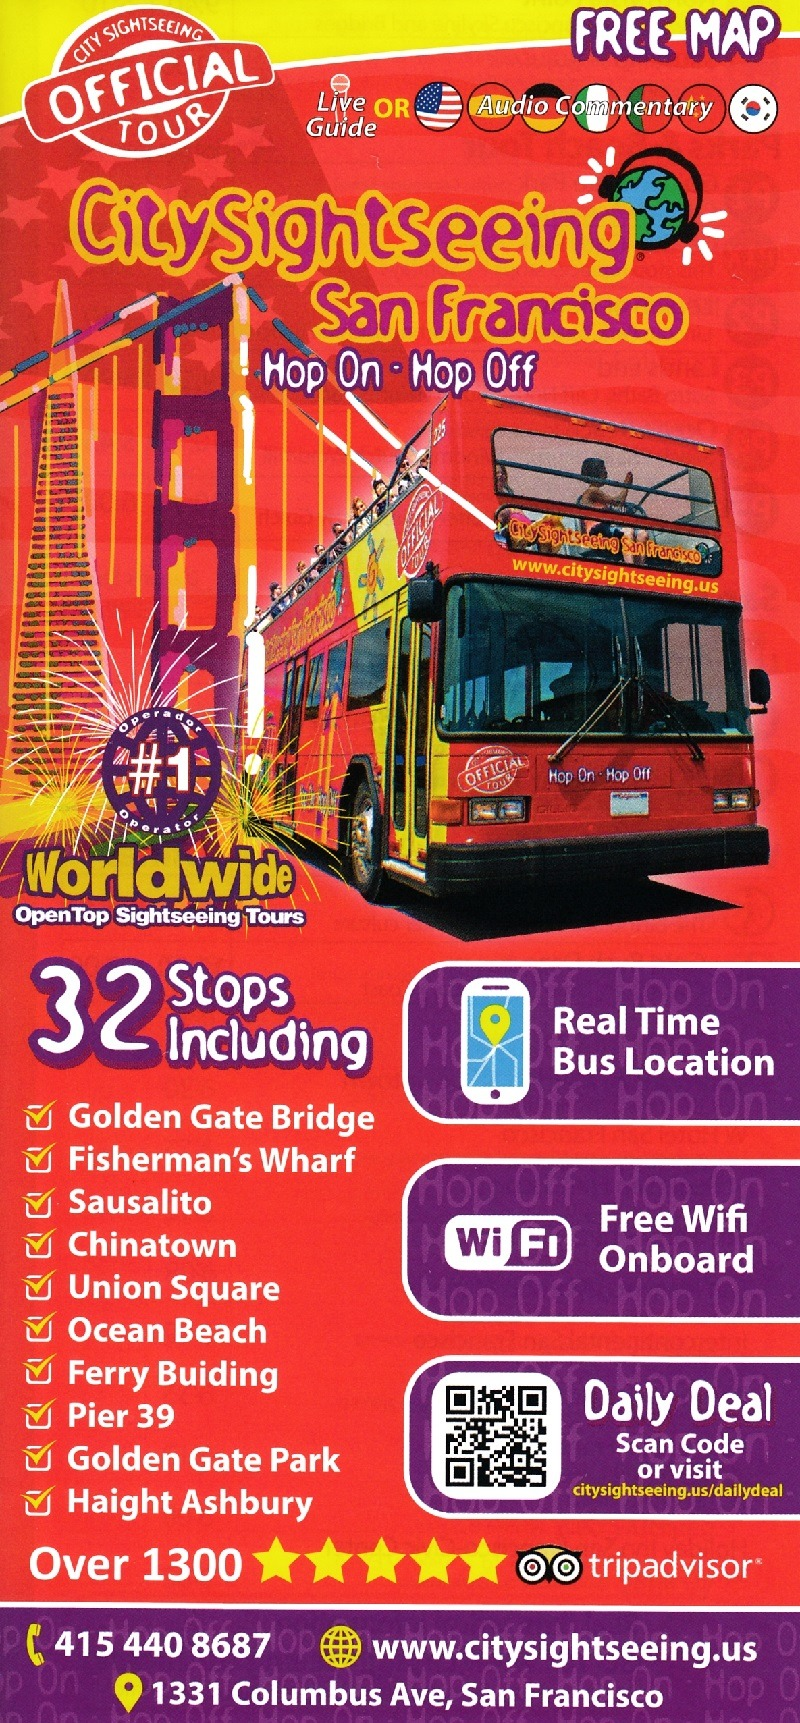 City Sightseeing San Francisco | San Francisco, CA - visitorfun.com